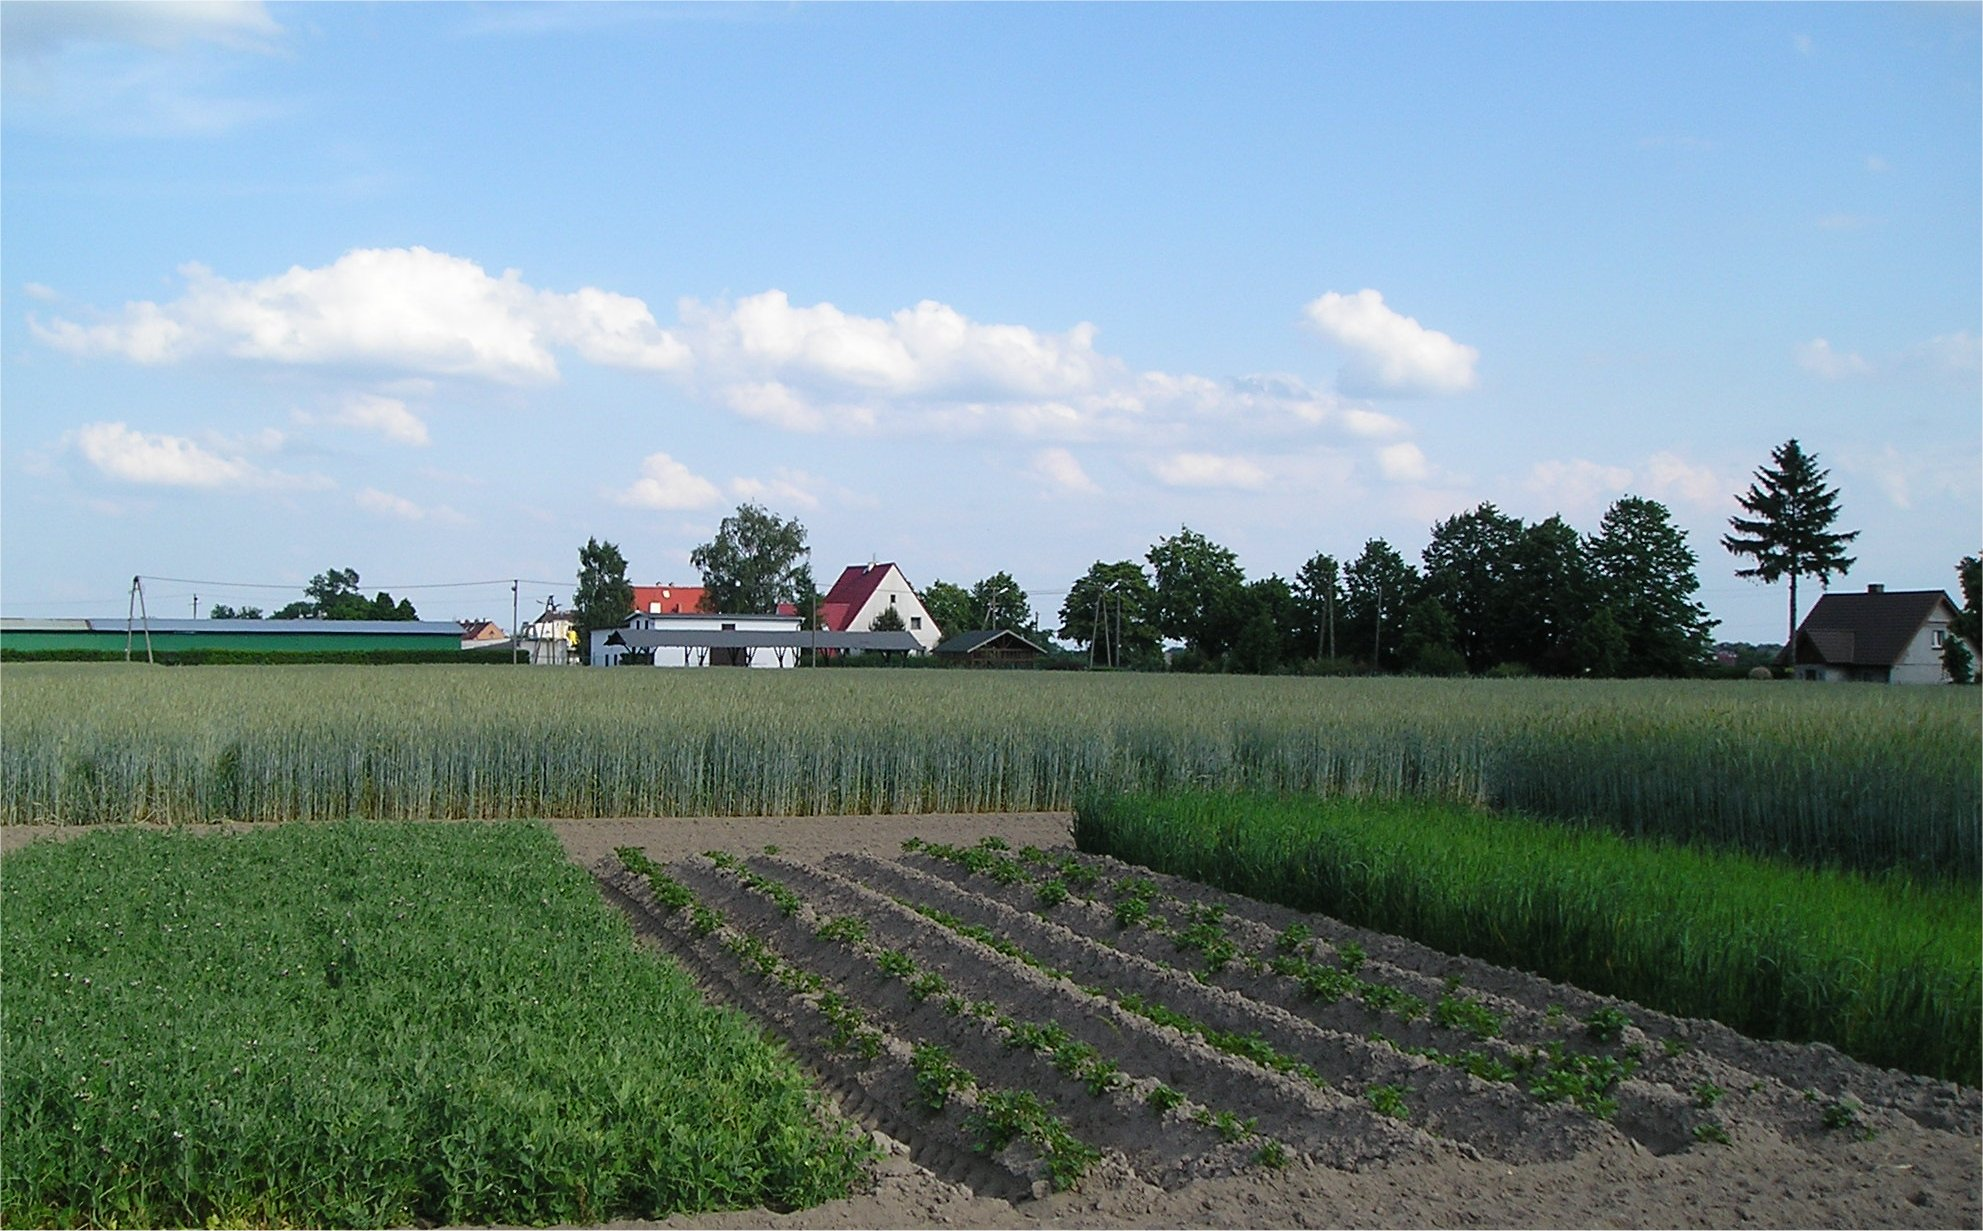 "Example of fields in different crop rotation cycles: Different crops on one farm as part of crop rotations. In the front field, the ""Norfolk"" crop rotation sequence (potatoes, oats, peas, rye) is being applied; in the back field, rye has been grown for 58 years in a row."